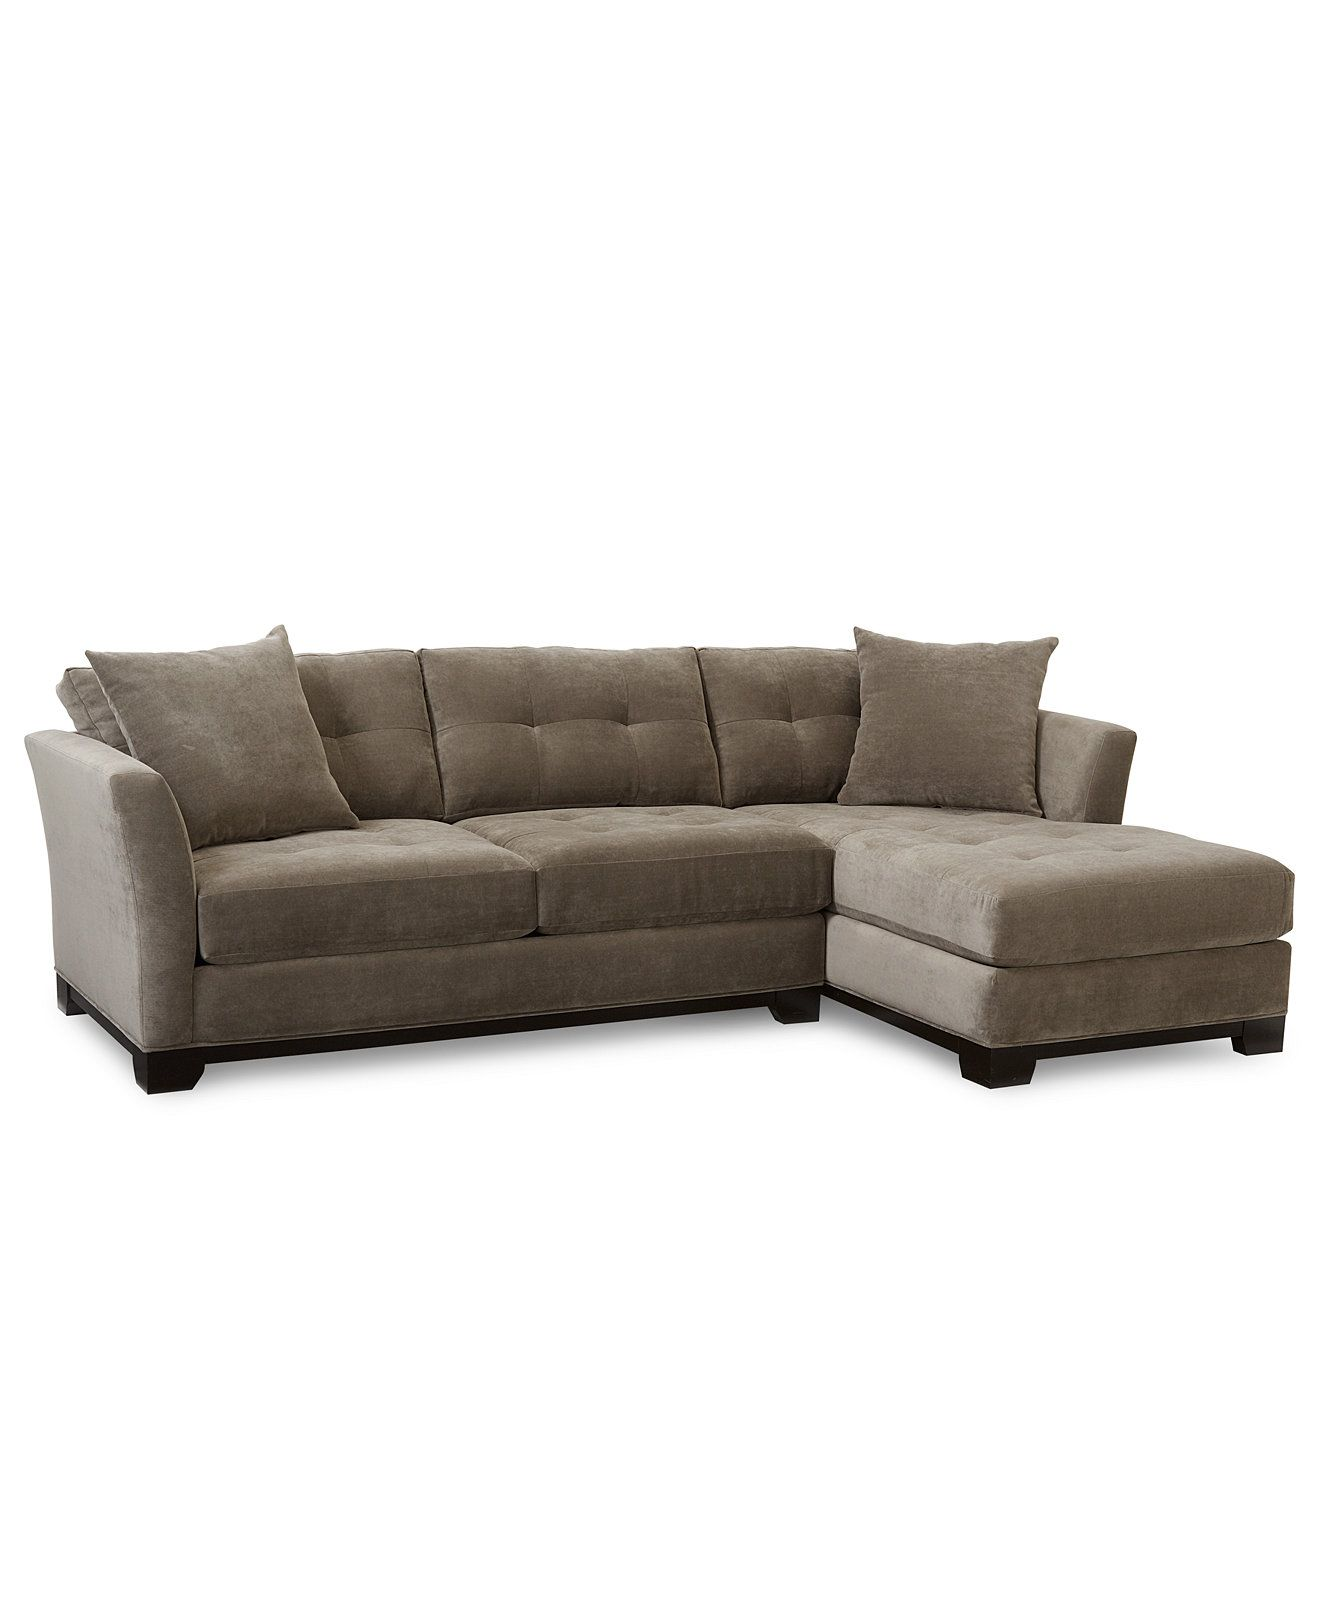 Elliot Fabric Microfiber 2-Piece Chaise Sectional Sofa